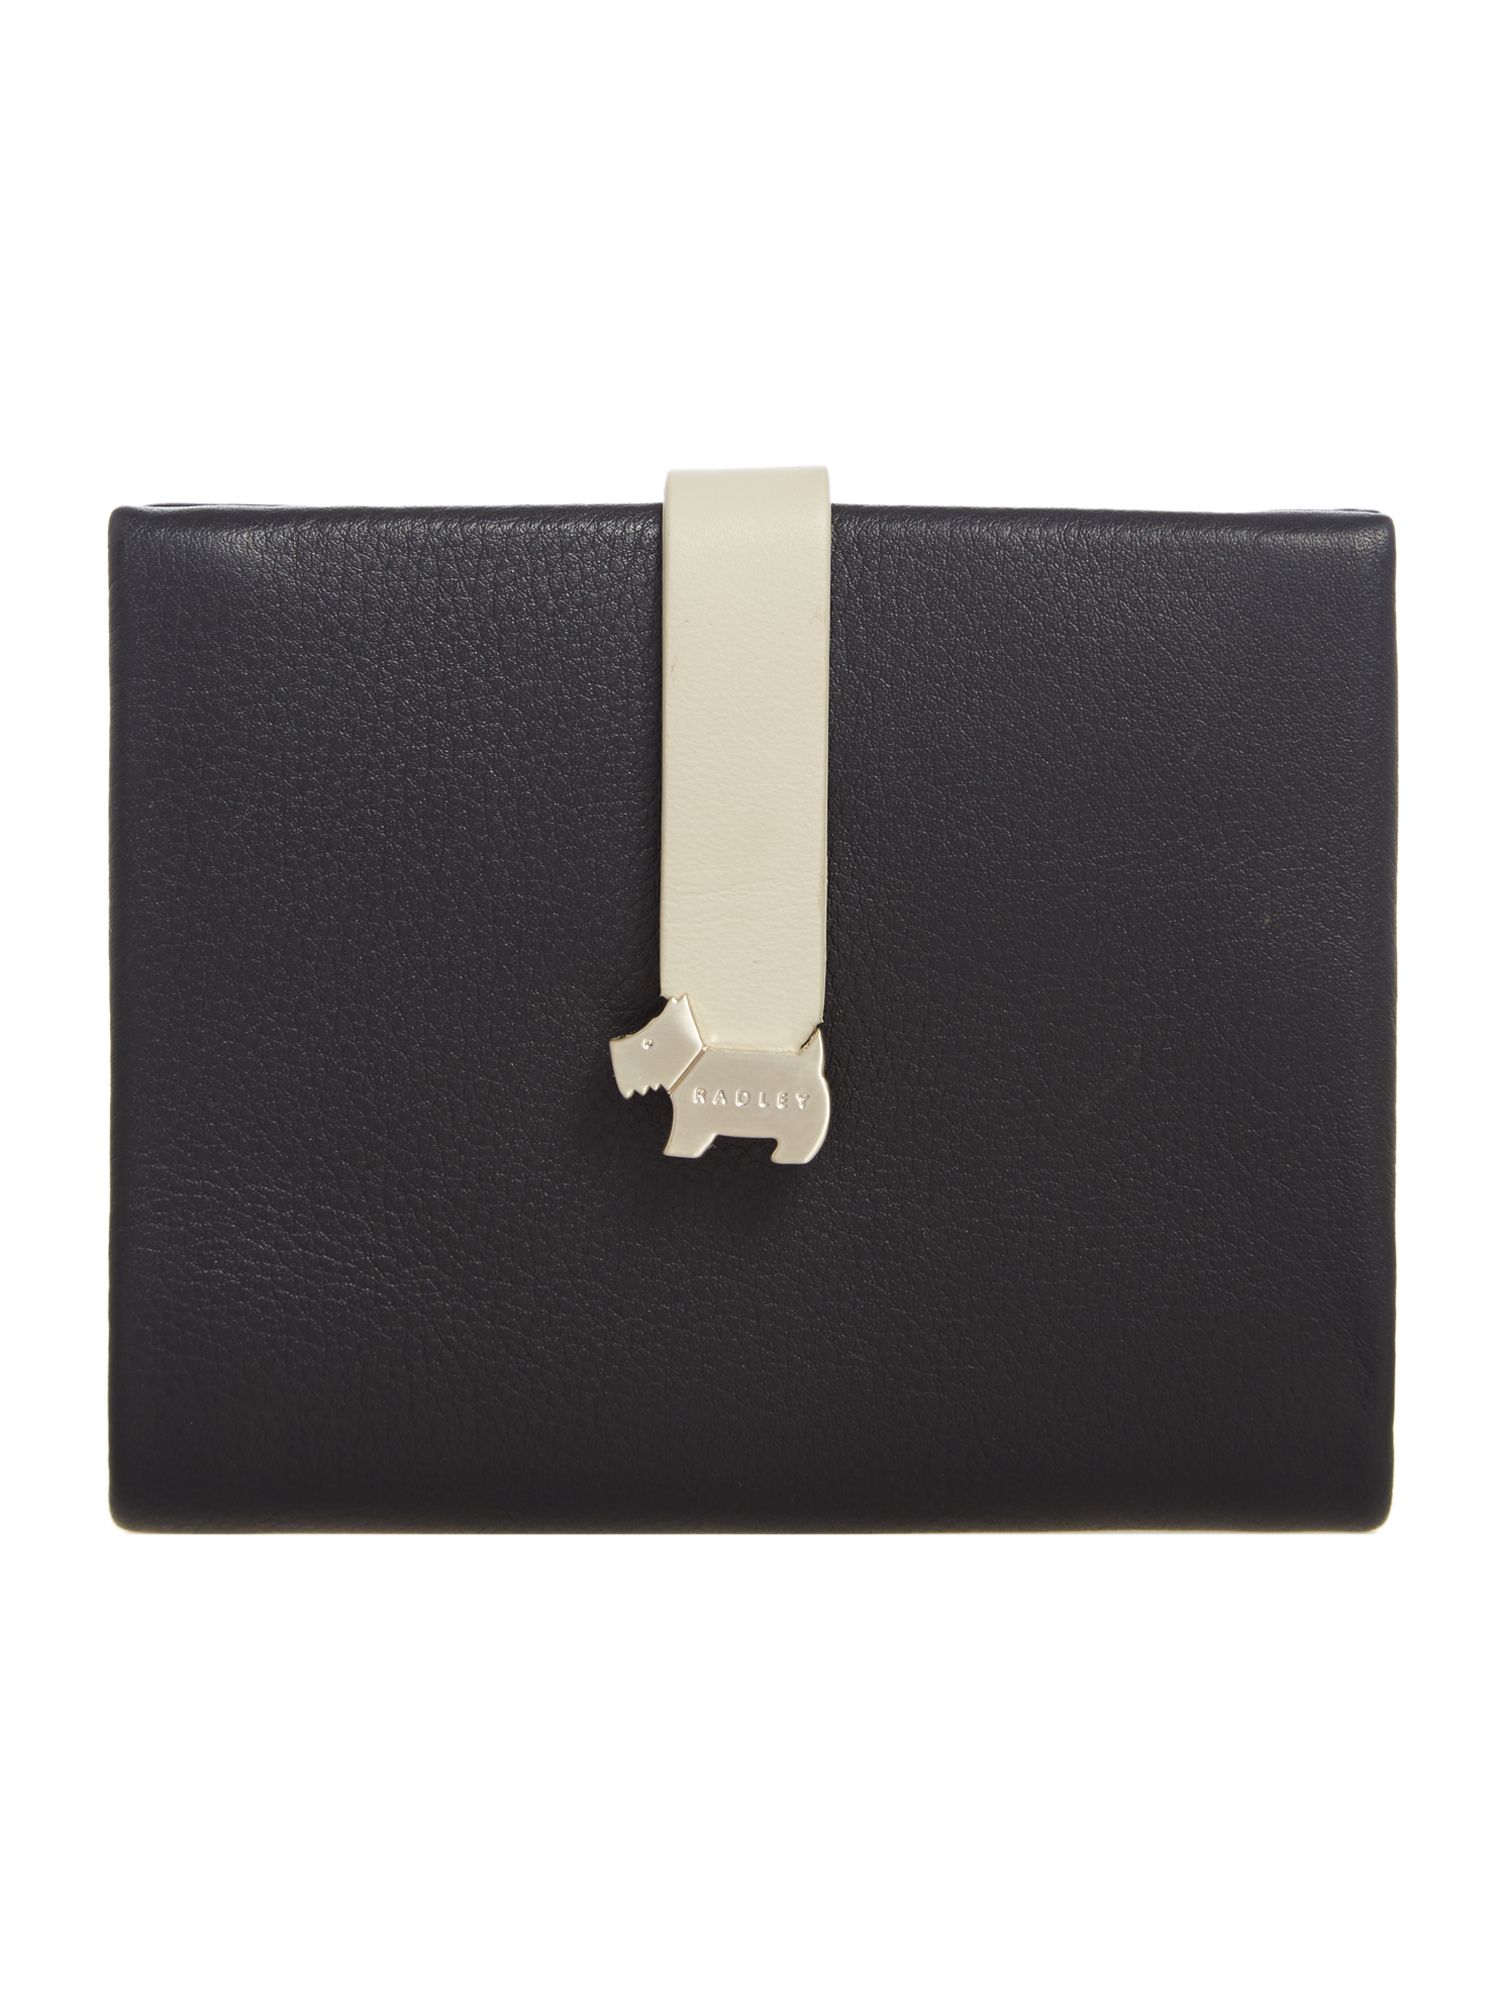 Radley Hamilton medium foldover purse Black